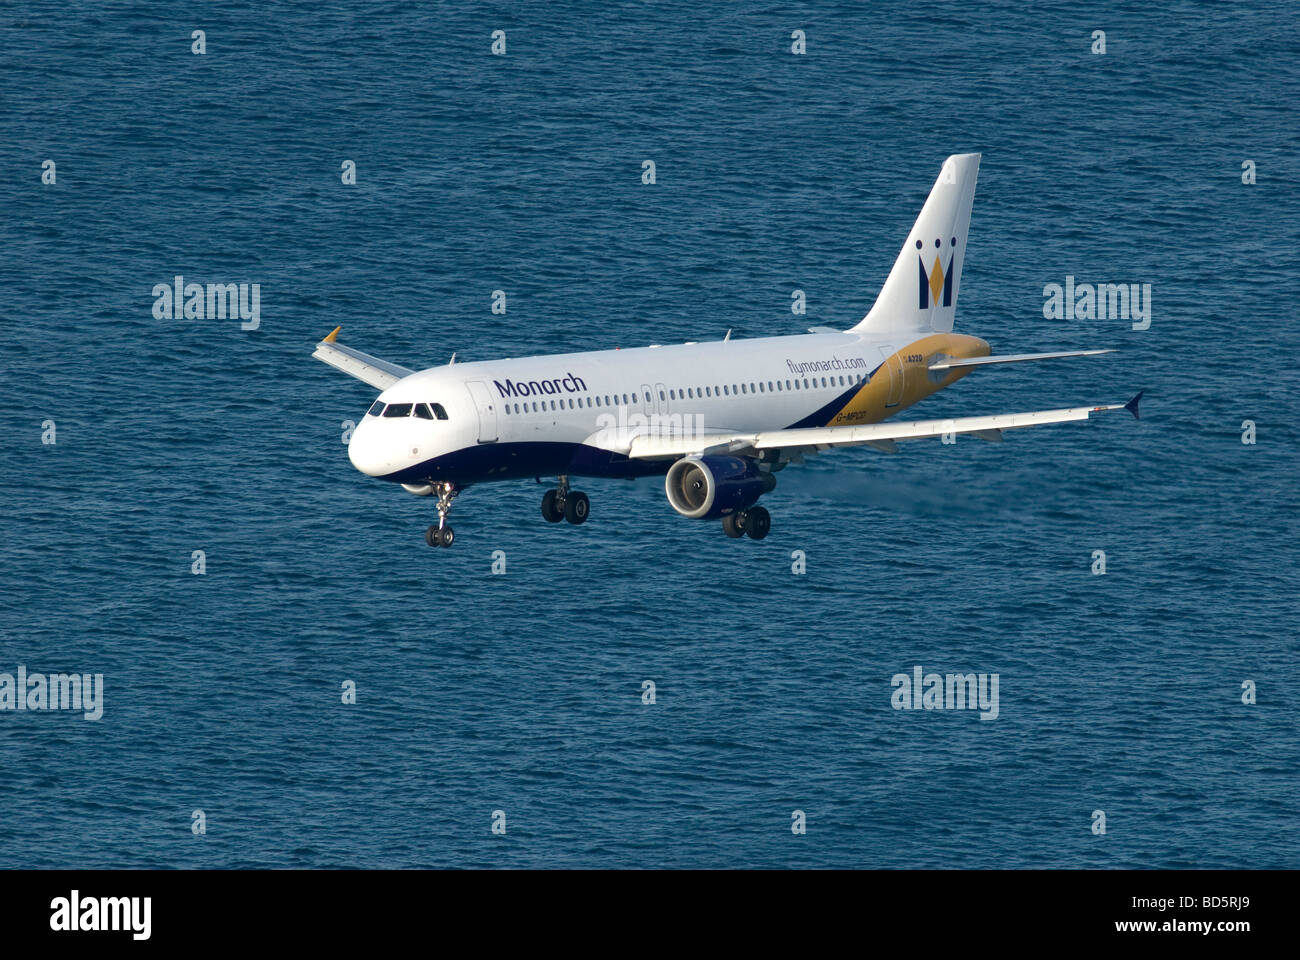 Monarch airlines jet on final approach to Gibraltar over Mediterranean sea Stock Photo